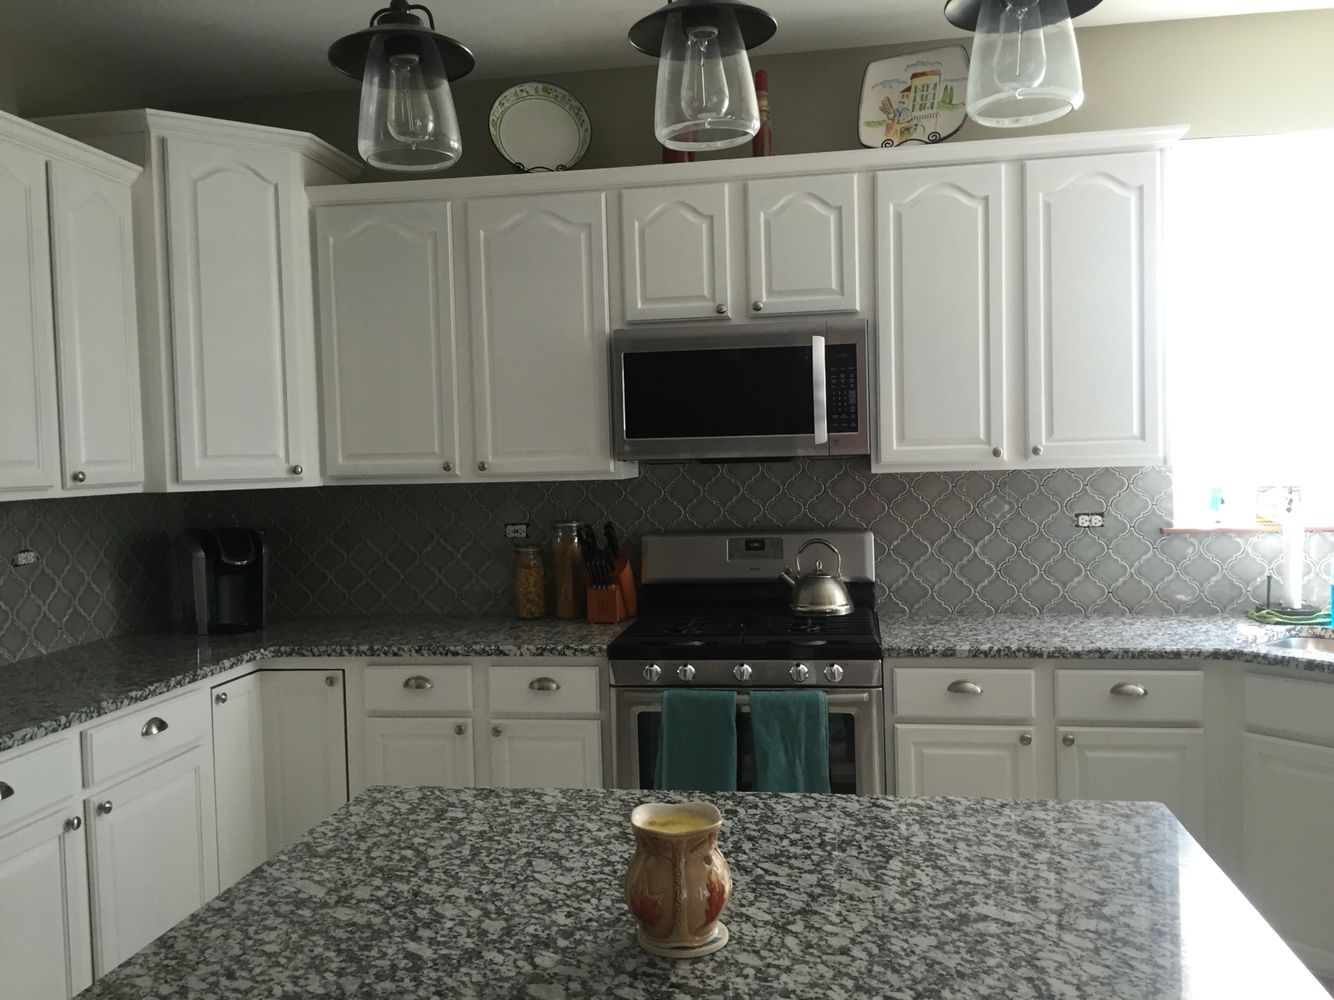 How To Update Laminate Kitchen Cabinets Kitchen Update No More Oak Cabinets Or Laminate